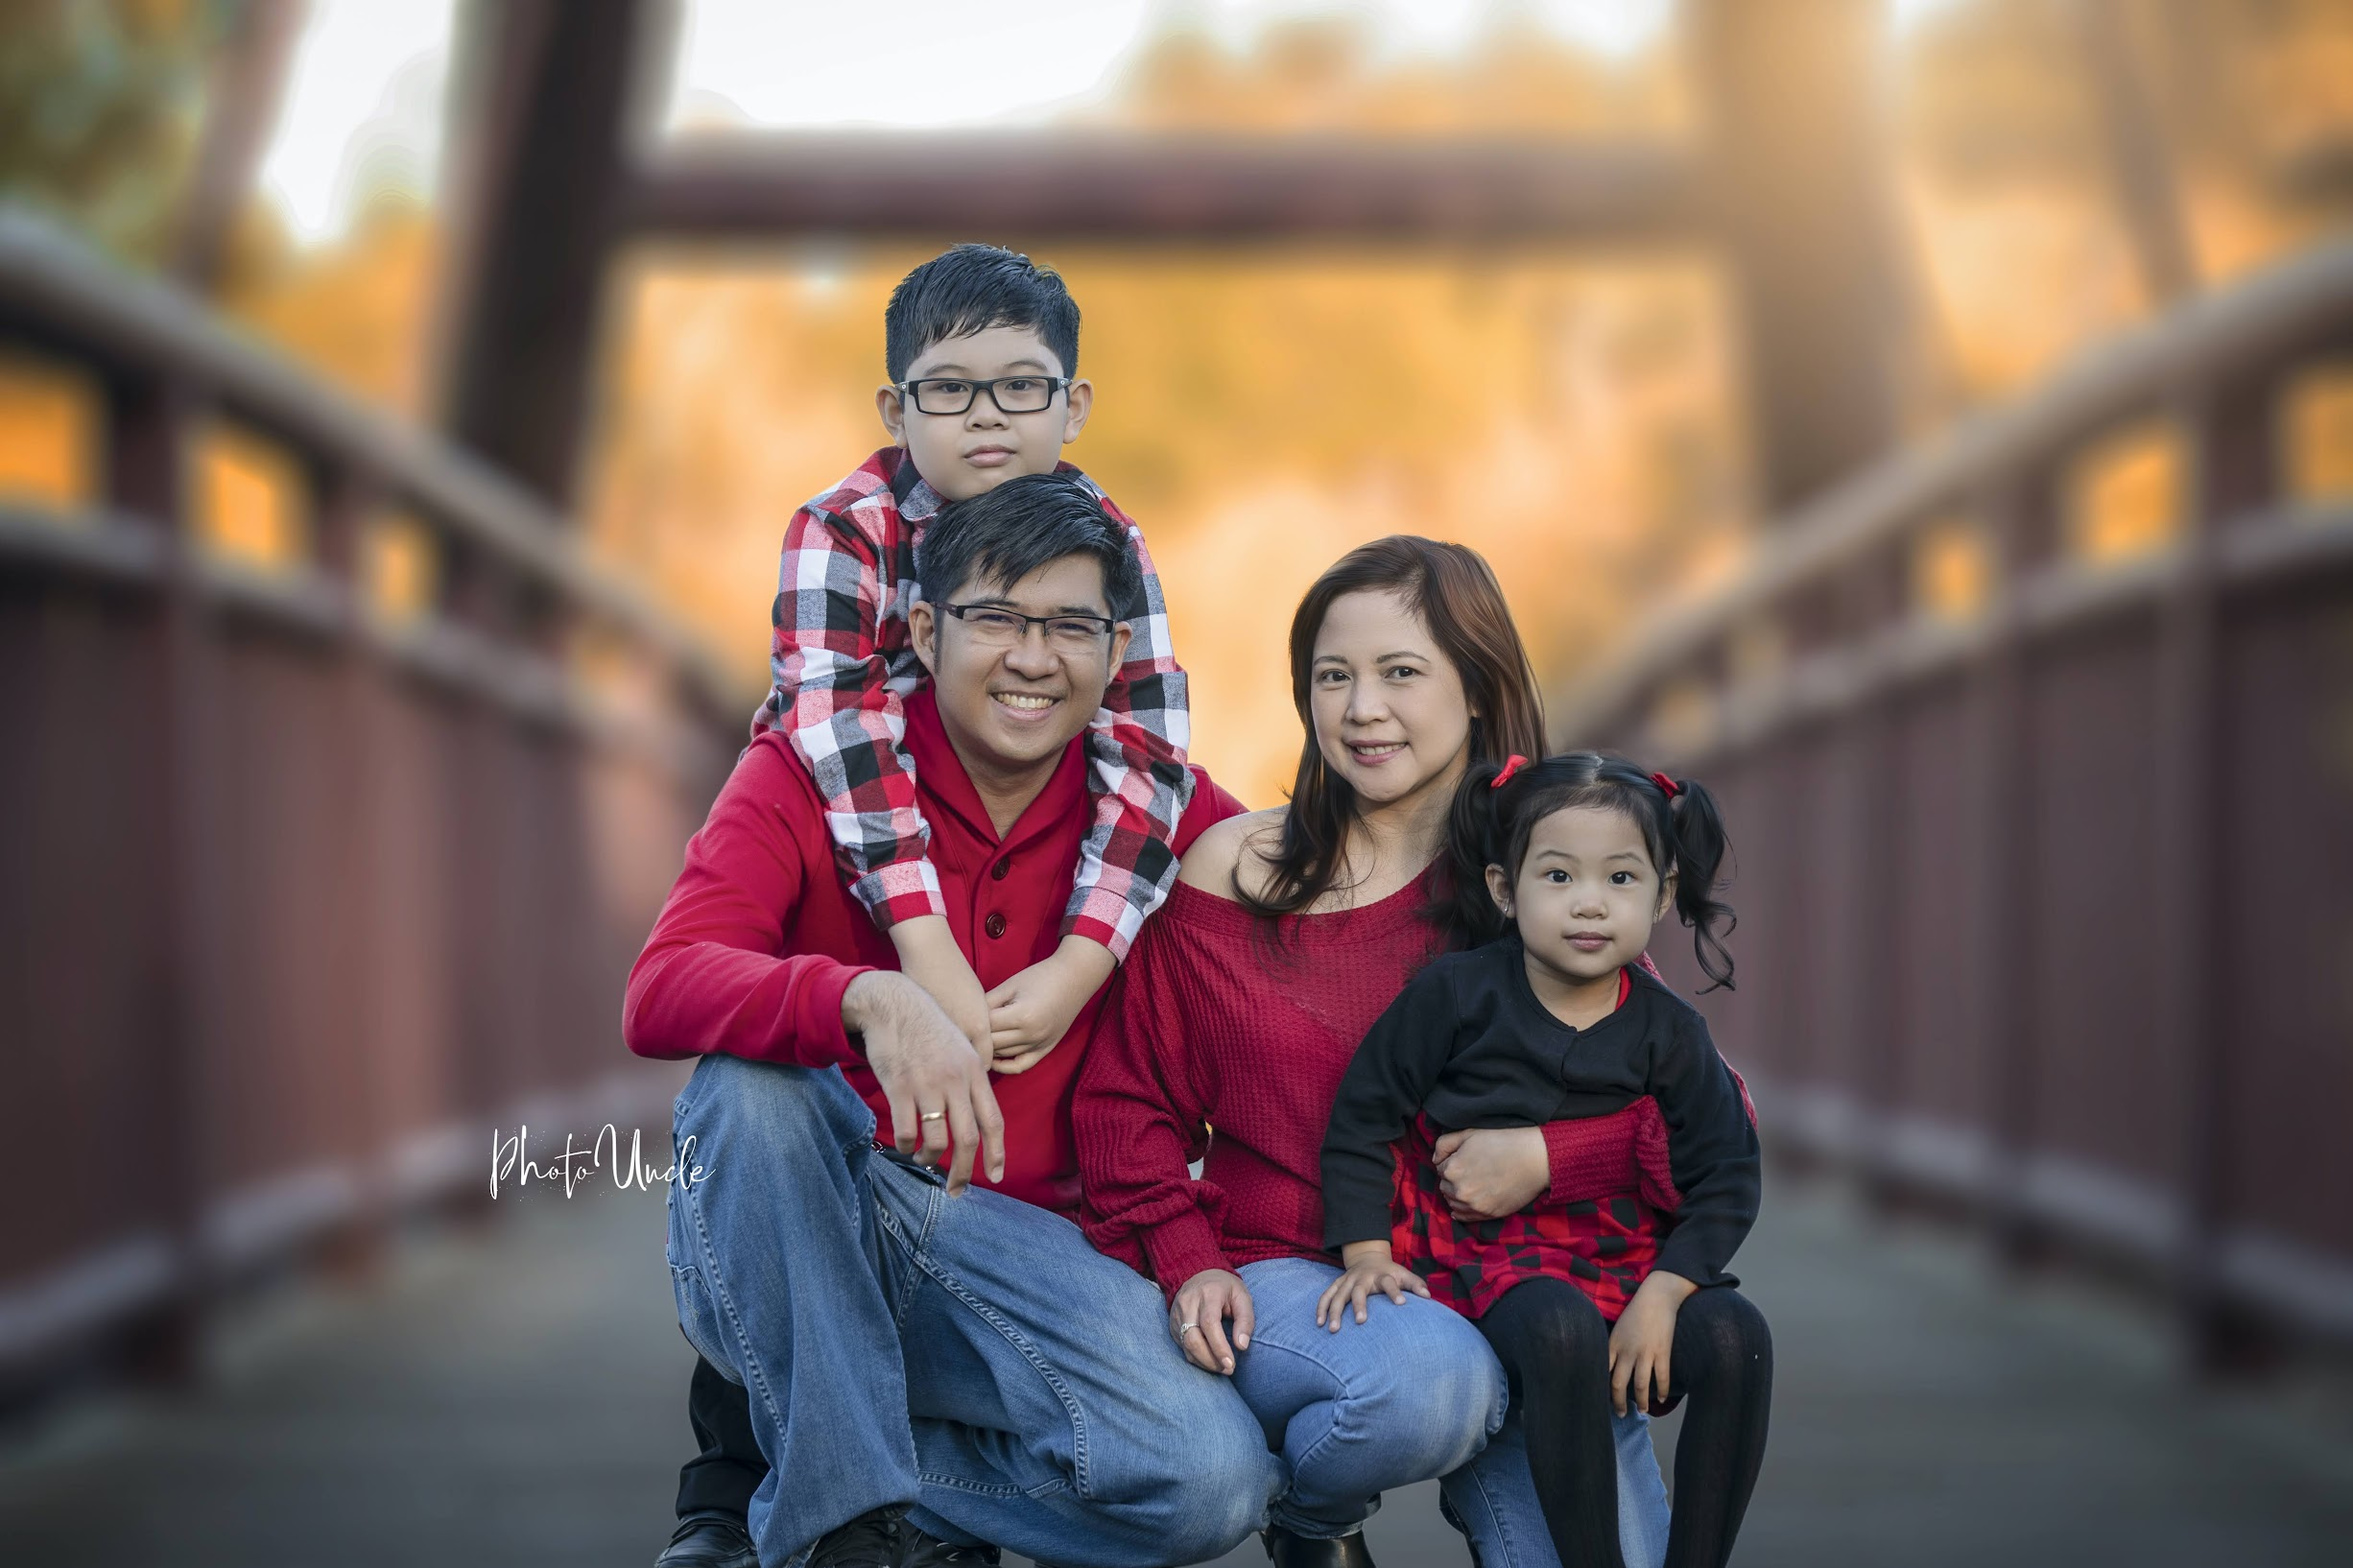 Family Portrait - Family Photography in San Jose Bay Area